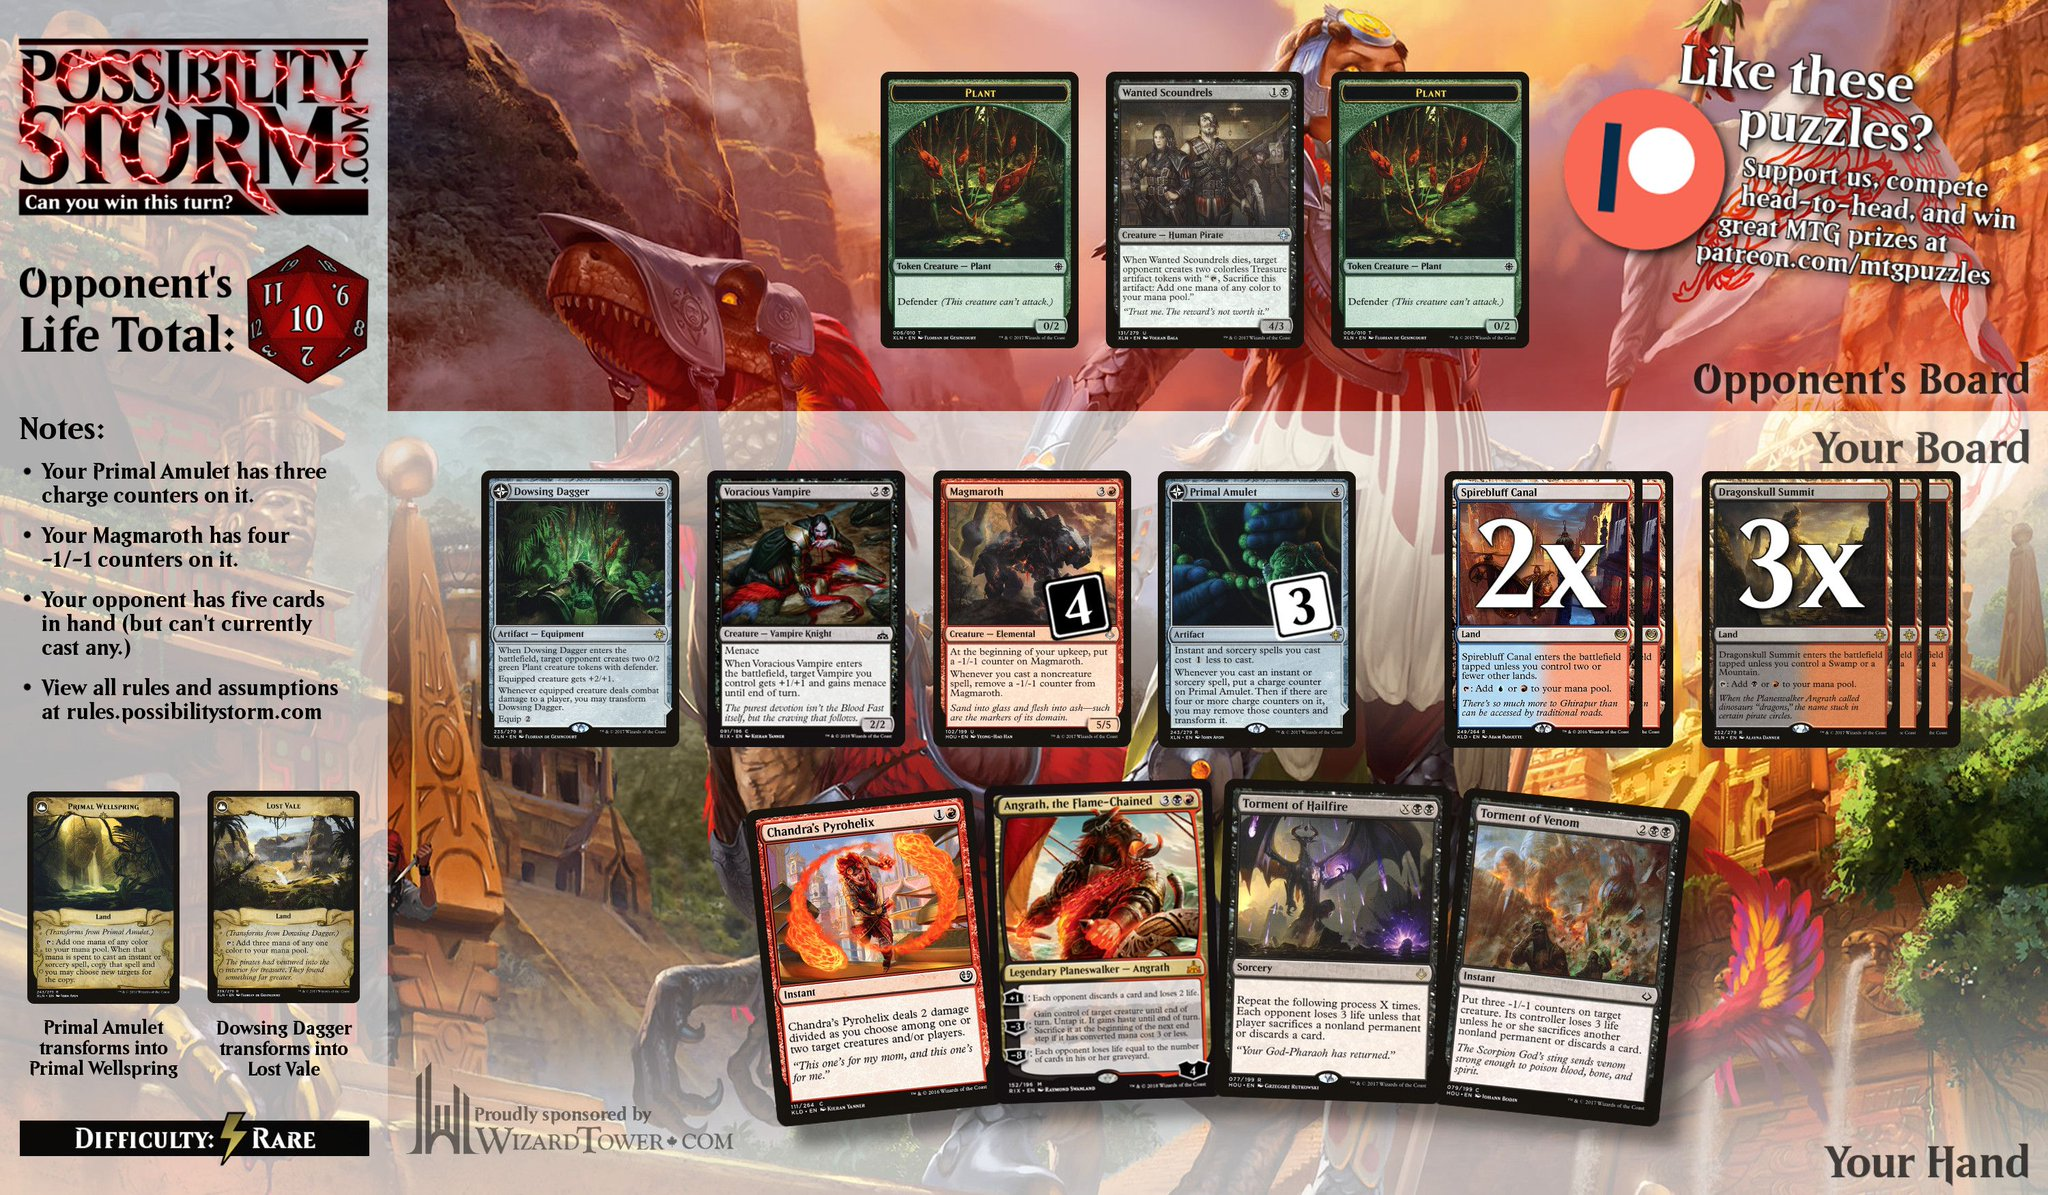 Possibility Storm - MTG Puzzles on Twitter: